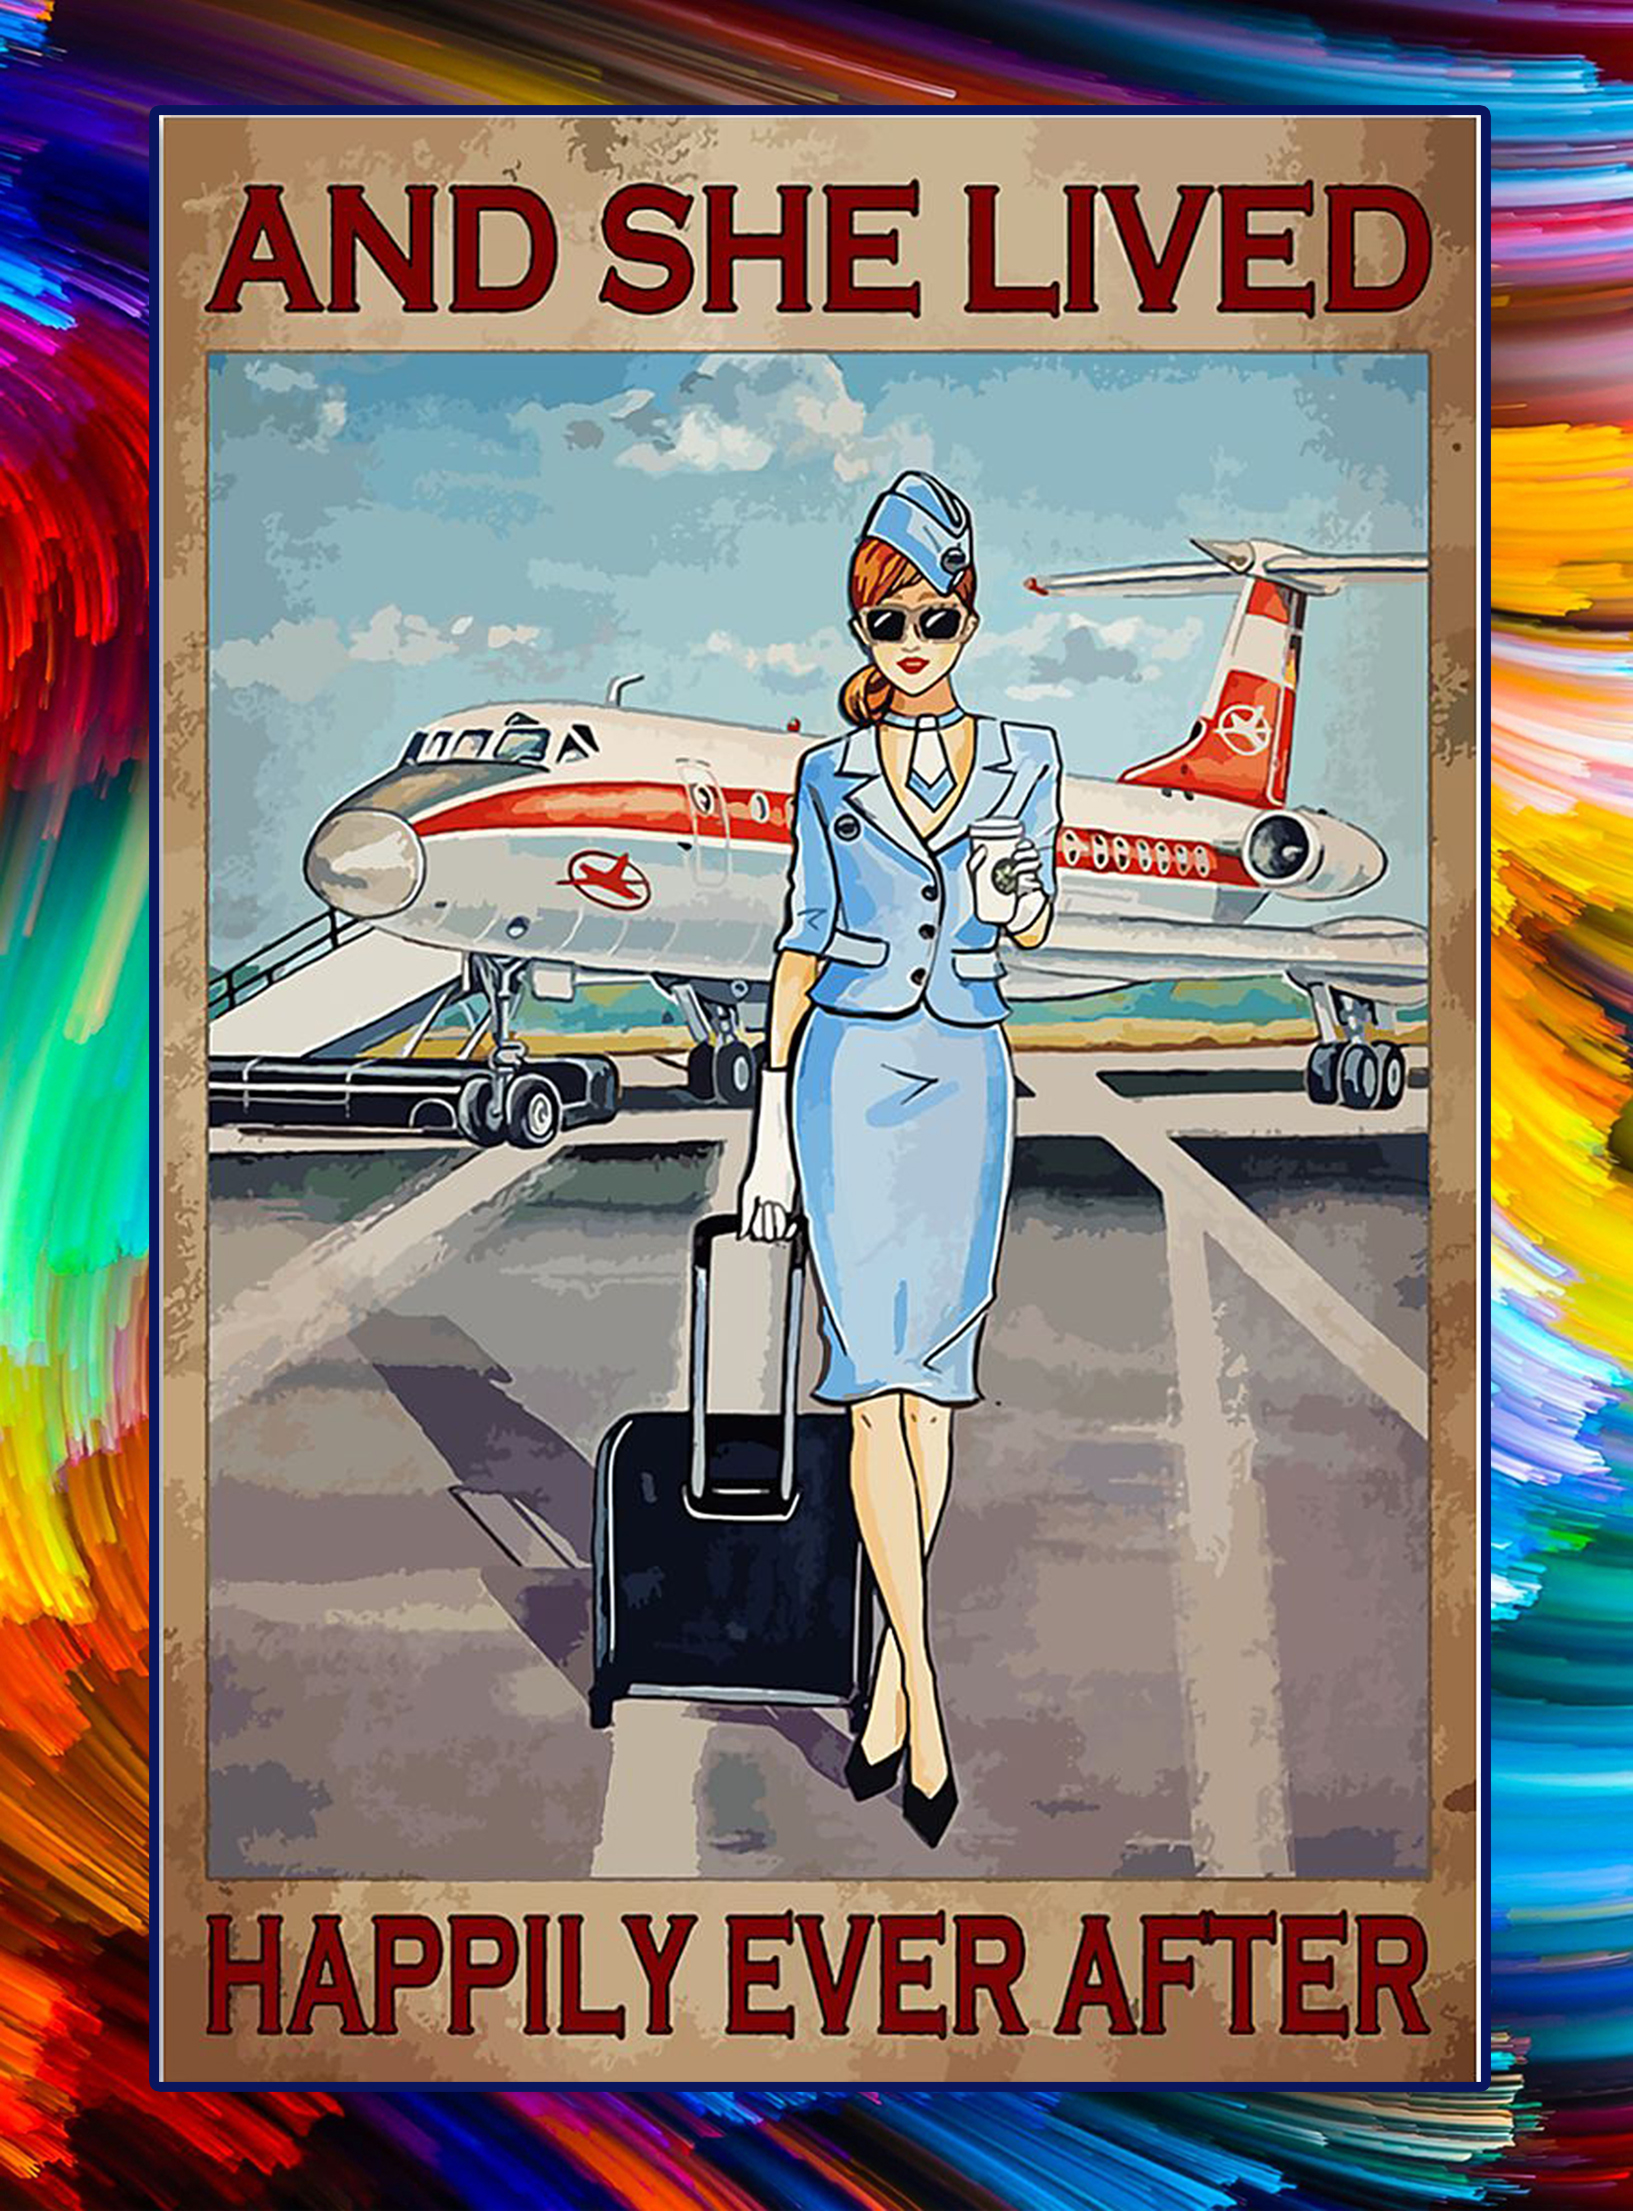 FLIGHT ATTENDANT And she lived happily ever after poster - A2